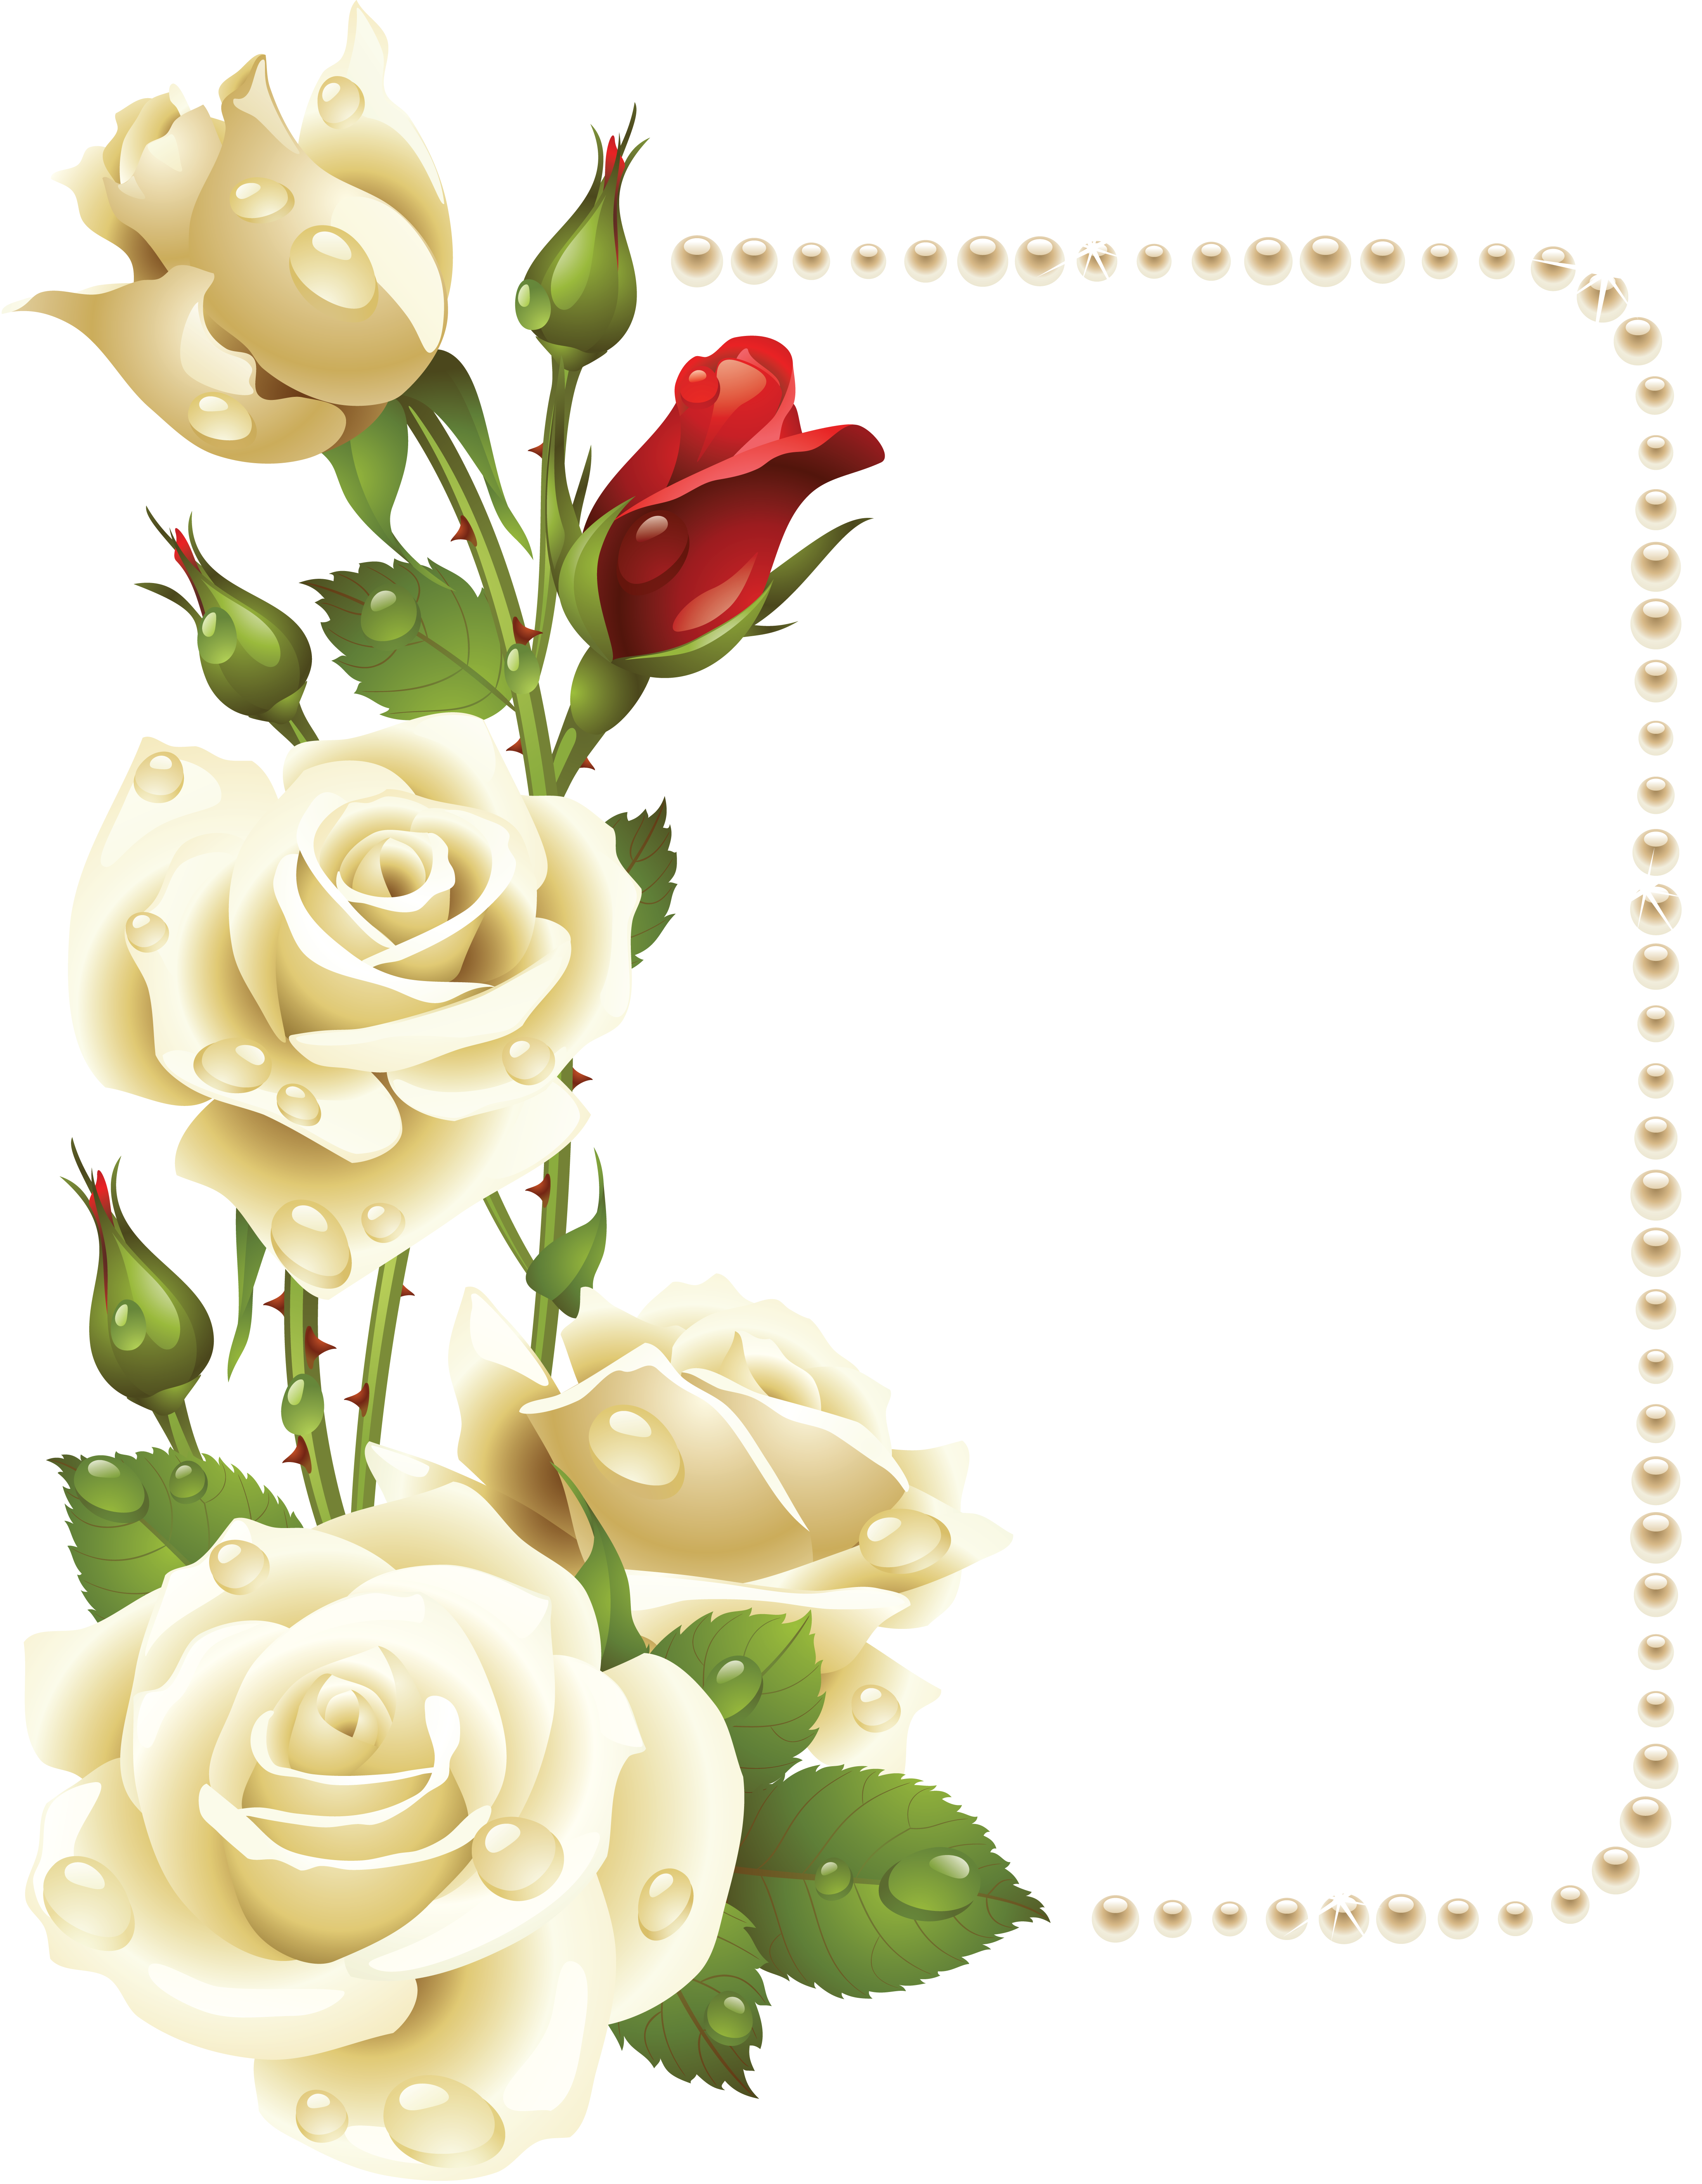 Budding flower clipart svg library Pin by Людмила on рамки | Pinterest | White roses and Pearls svg library